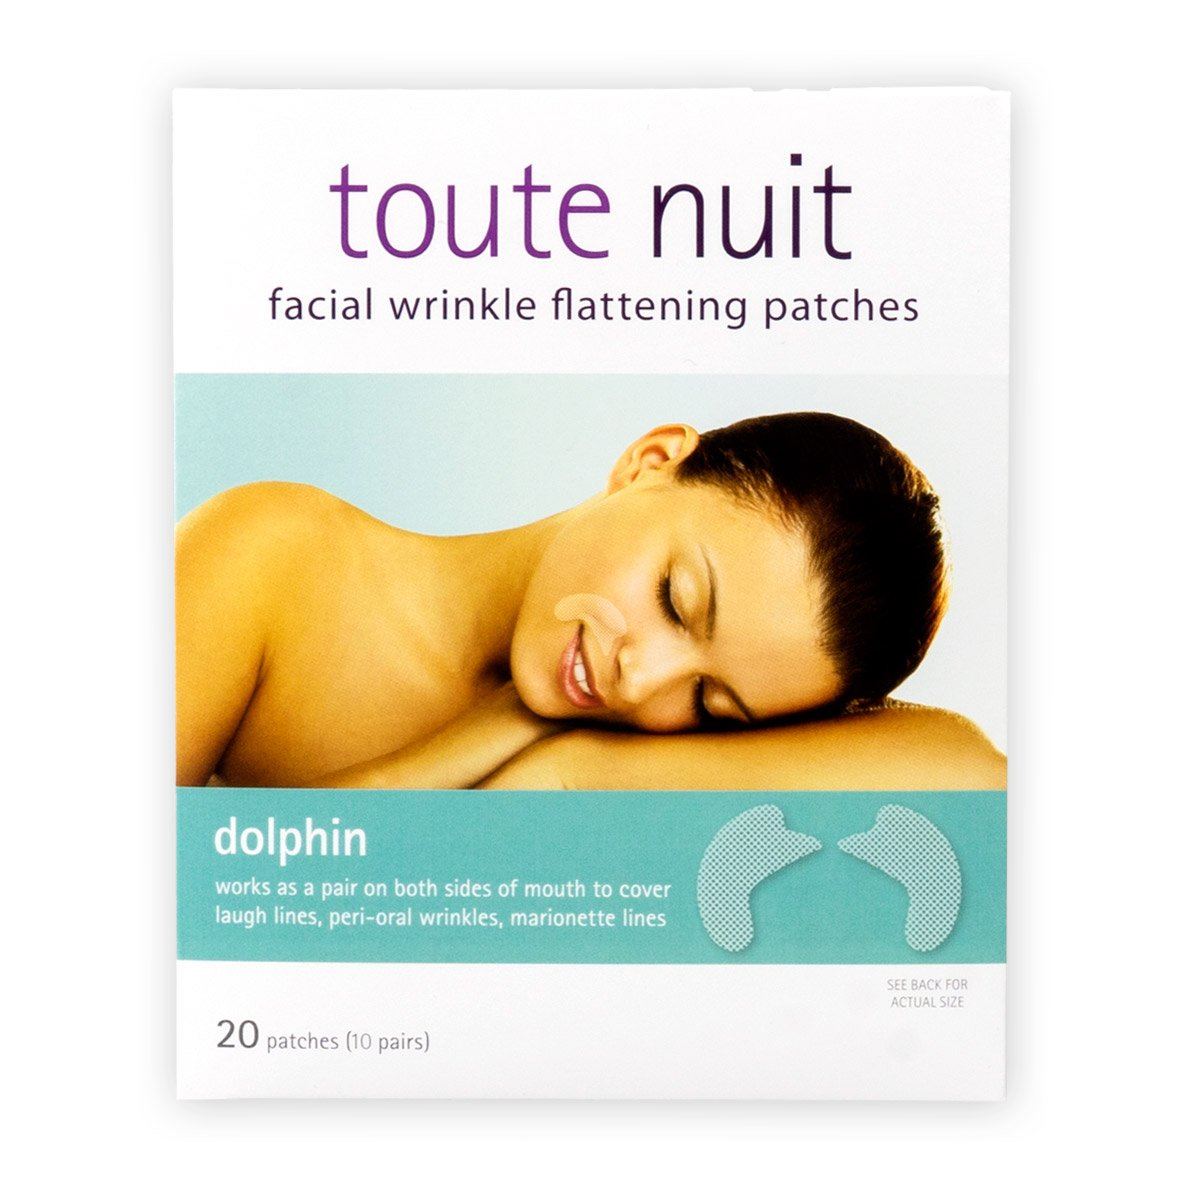 Toute Nuit - Mimiko Inc. Toute Nuit Facial Wrinkle Flattening Patches – DOLPHIN Full Coverage Around Mouth (Anti-Wrinkle Patches/Face Tape)